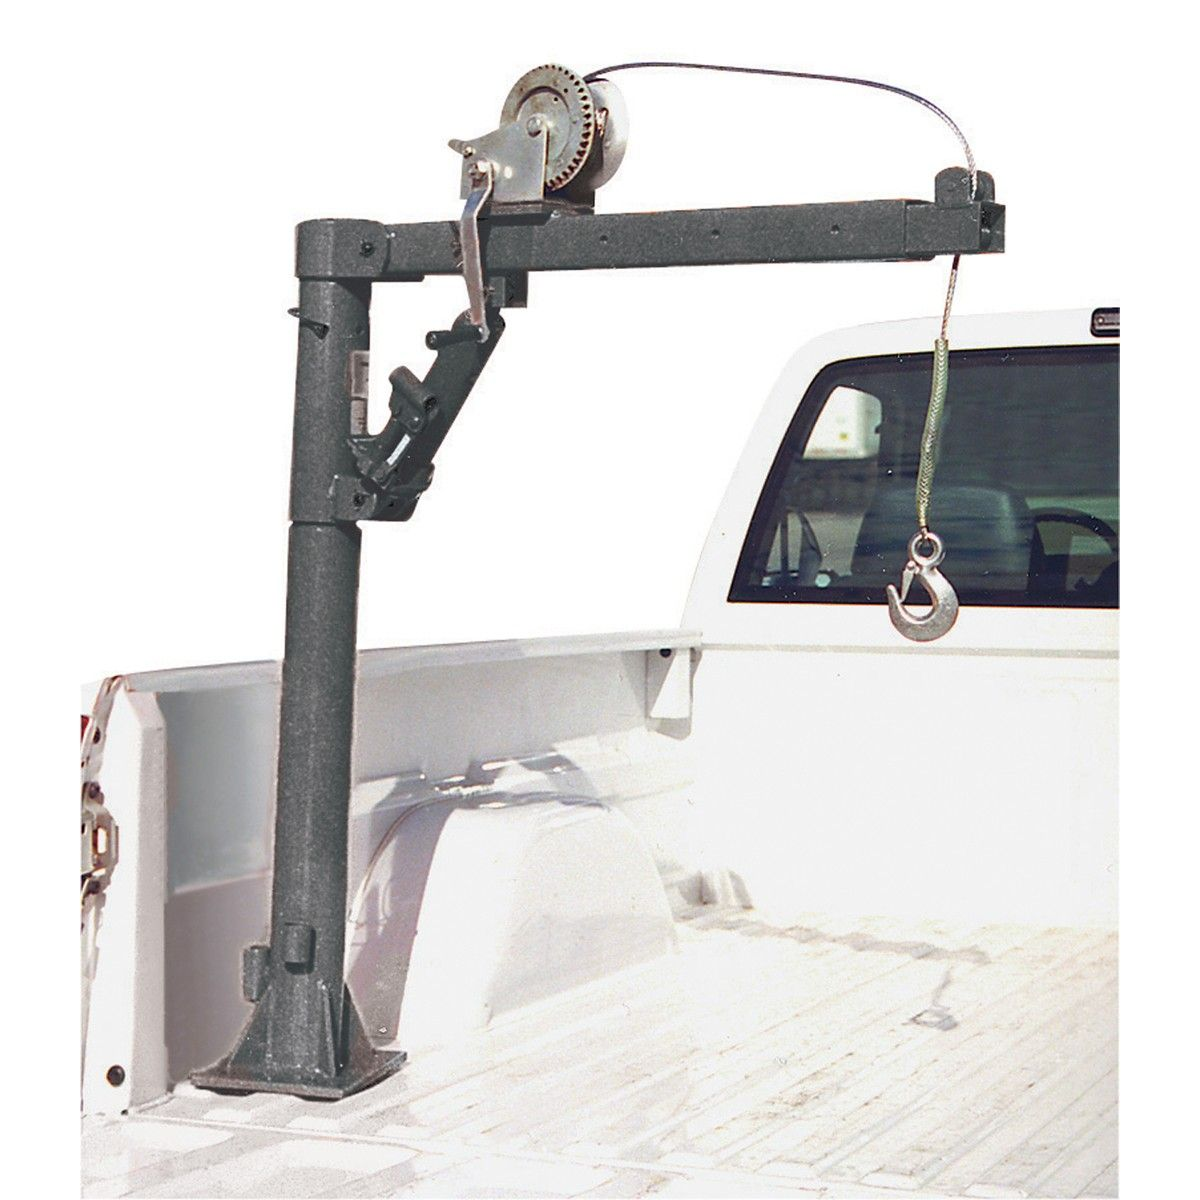 1 2 Ton Capacity Pickup Truck Crane With Cable Winch In 2018 Harbor Freight Camo Atv Wiring Diagram